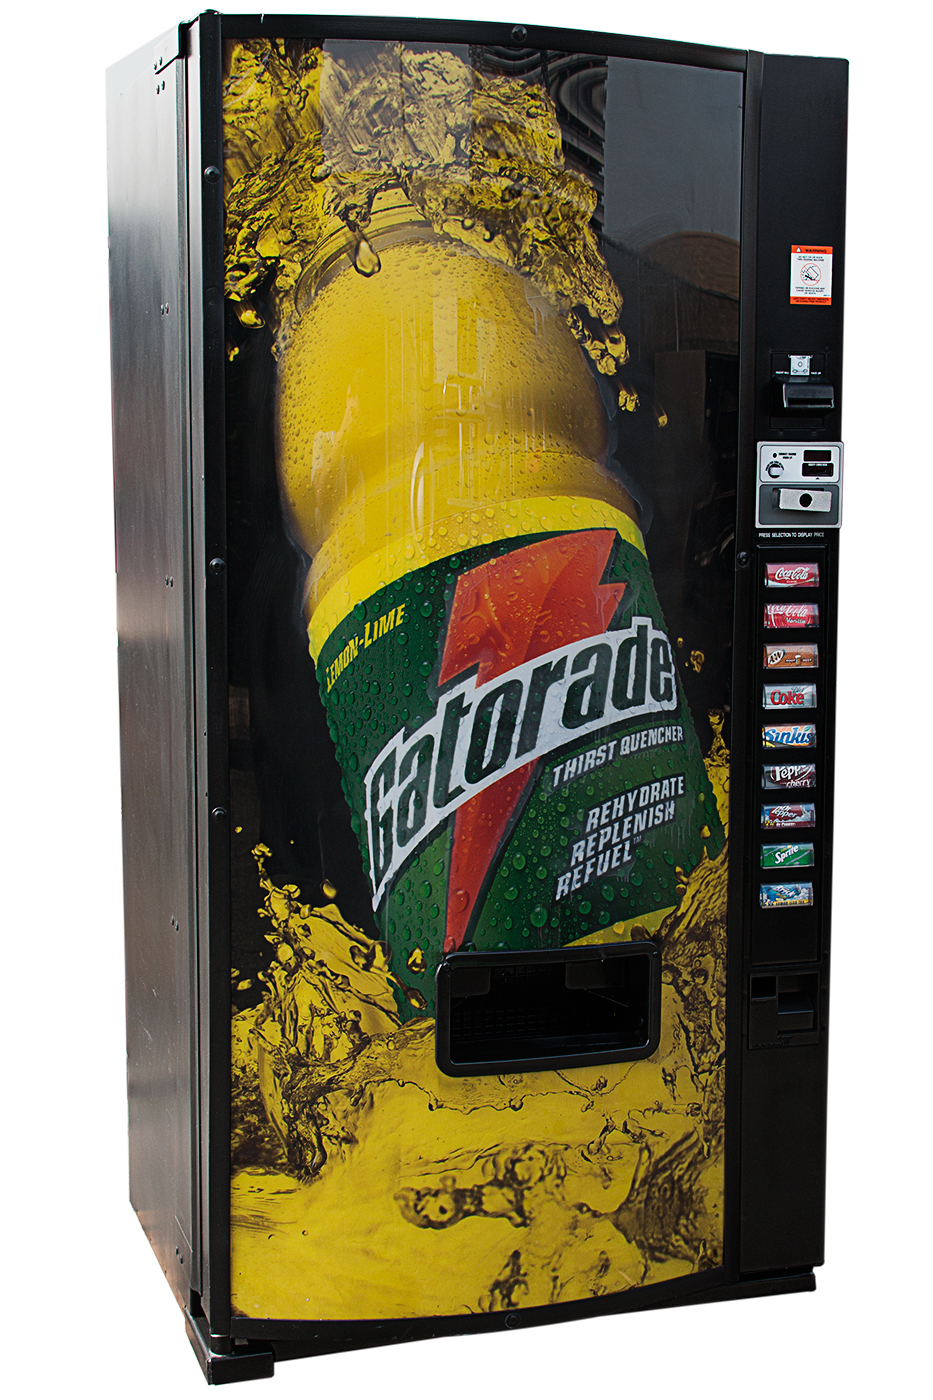 Gatorade multi price vending machine - product detail